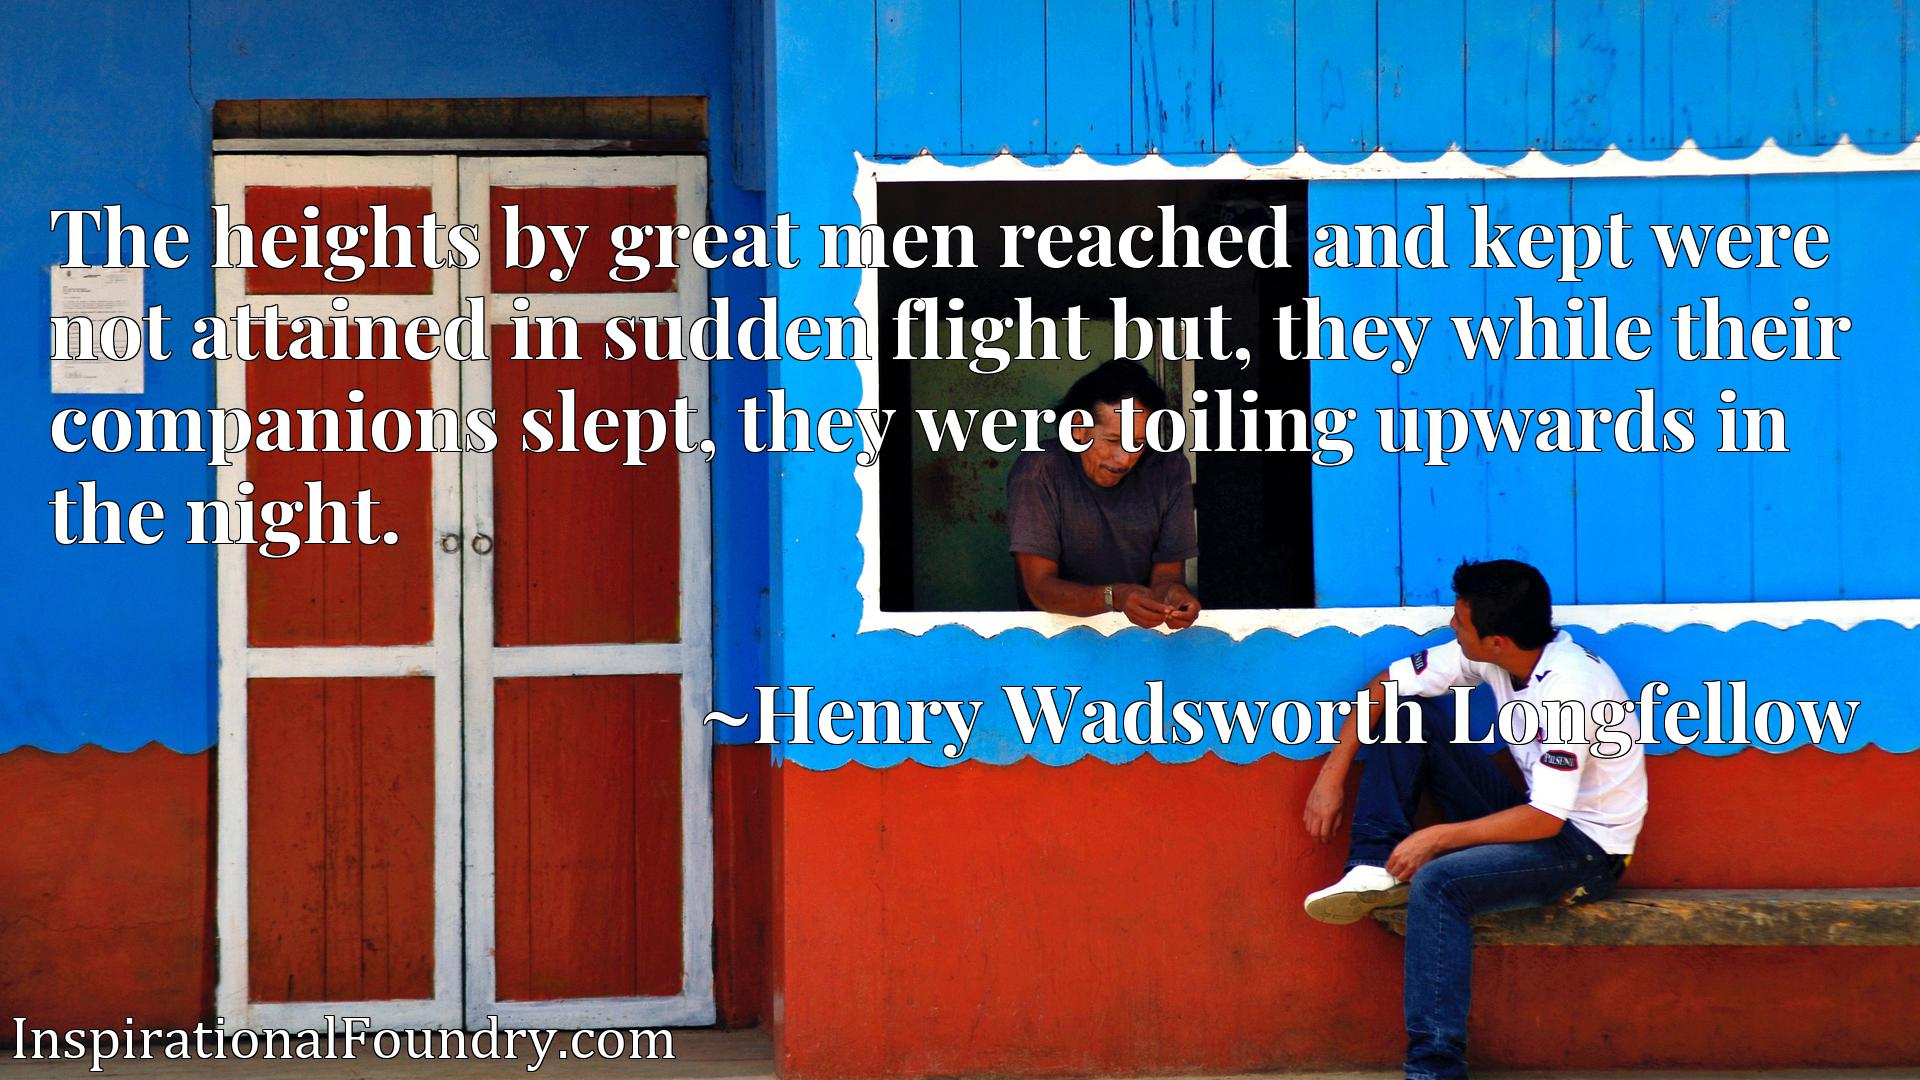 The heights by great men reached and kept were not attained in sudden flight but, they while their companions slept, they were toiling upwards in the night.